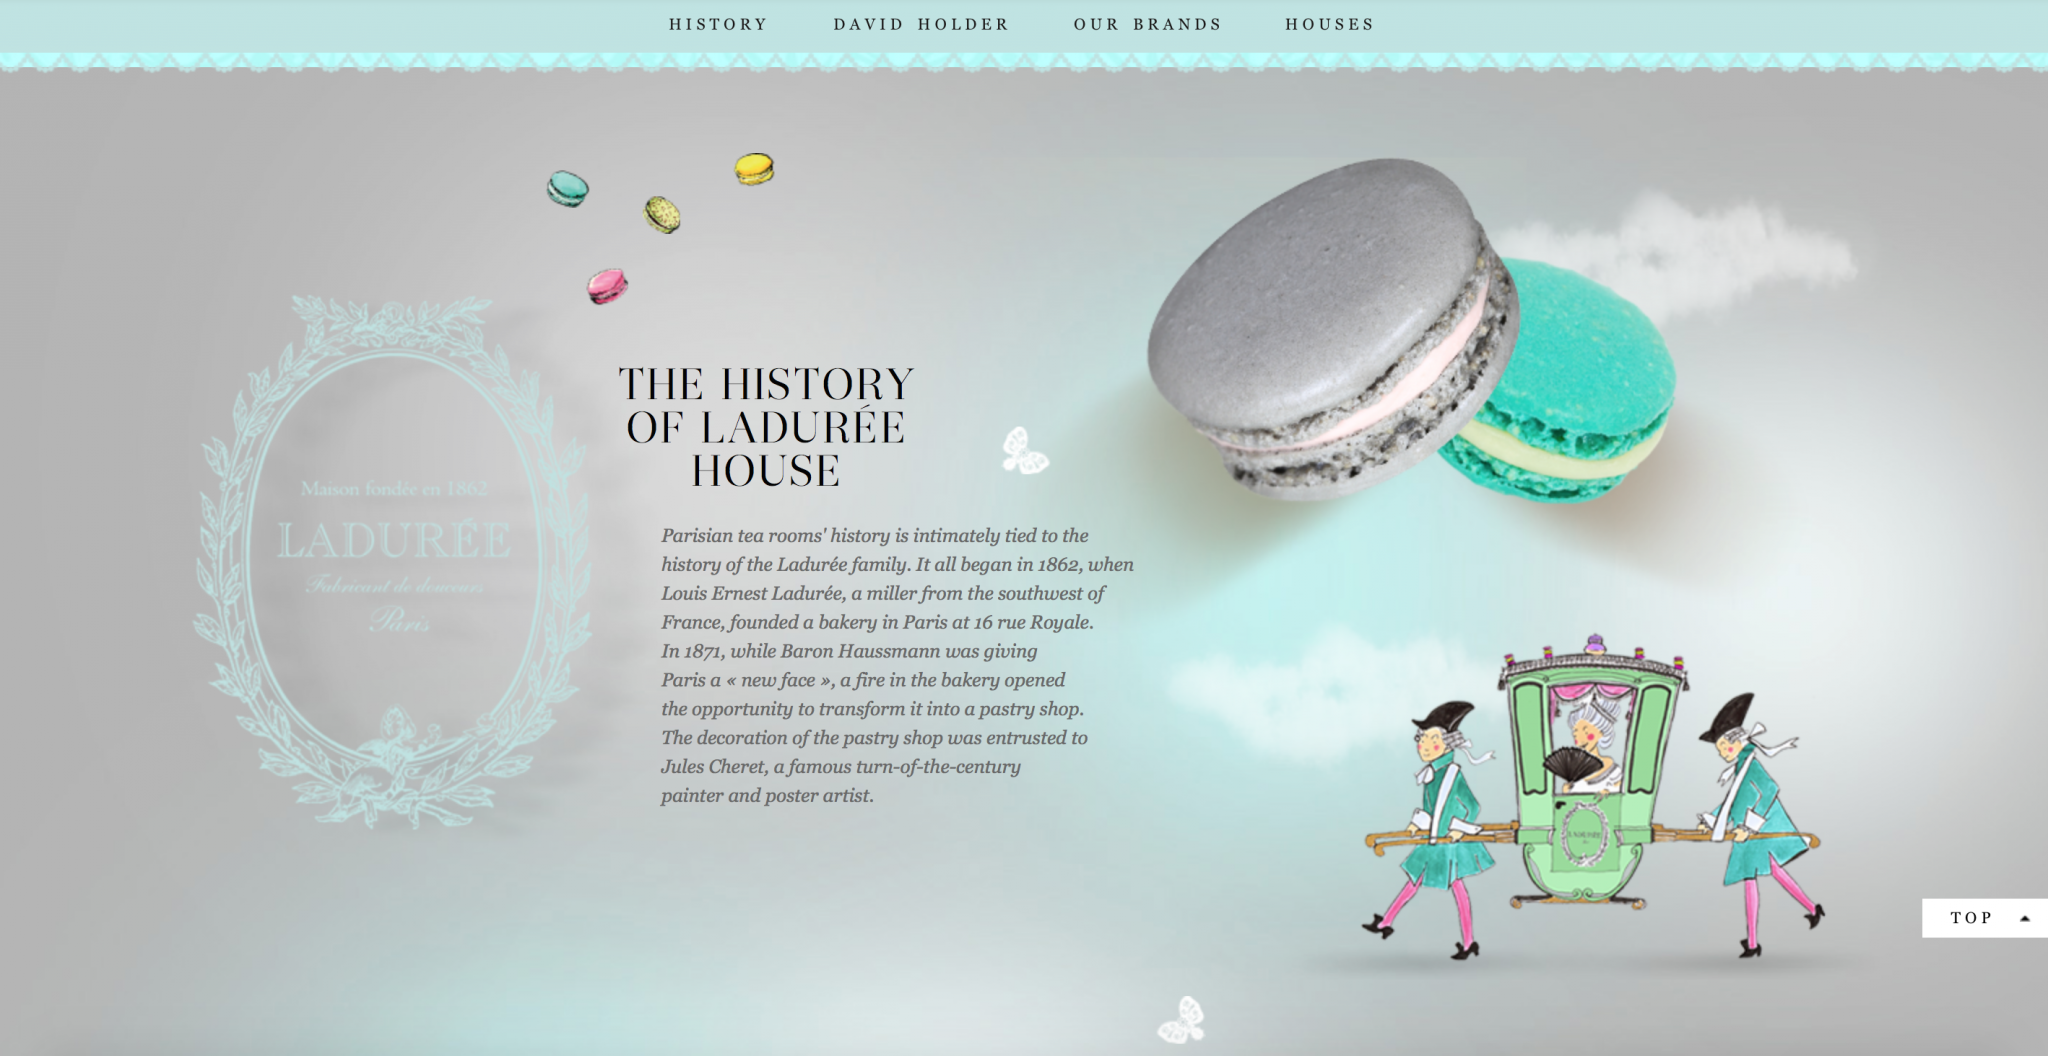 Source: laduree.com/en_int/#!brand/history